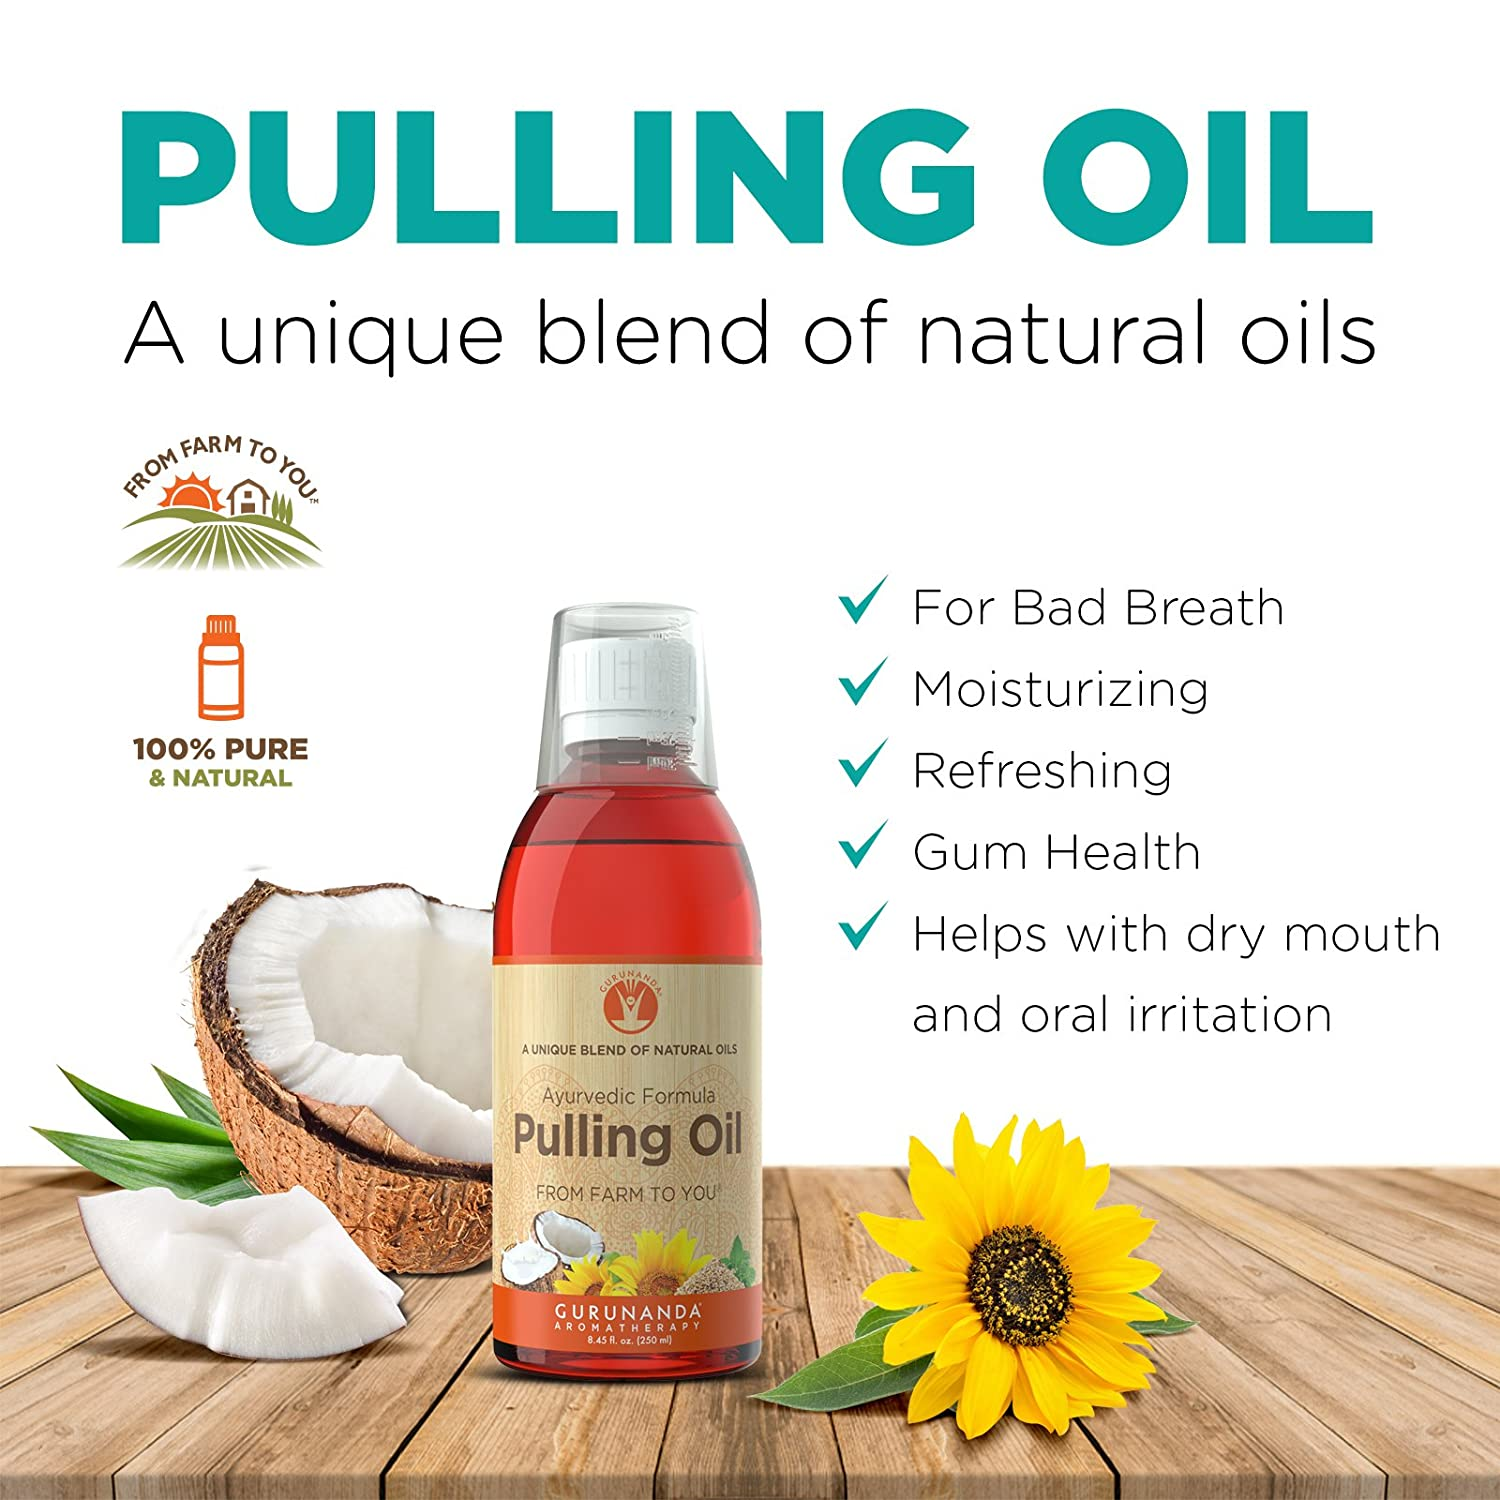 GuruNanda Oil Pulling Oil, Natural Mouthwash, Ayurvedic Blend of Coconut, Sesame, Sunflower, & Peppermint Oils. A Refreshing Oral Rinse - Helps Bad Breath, Healthy Gums + Whitens Teeth. (8.45 fl. oz).: Health & Personal Care